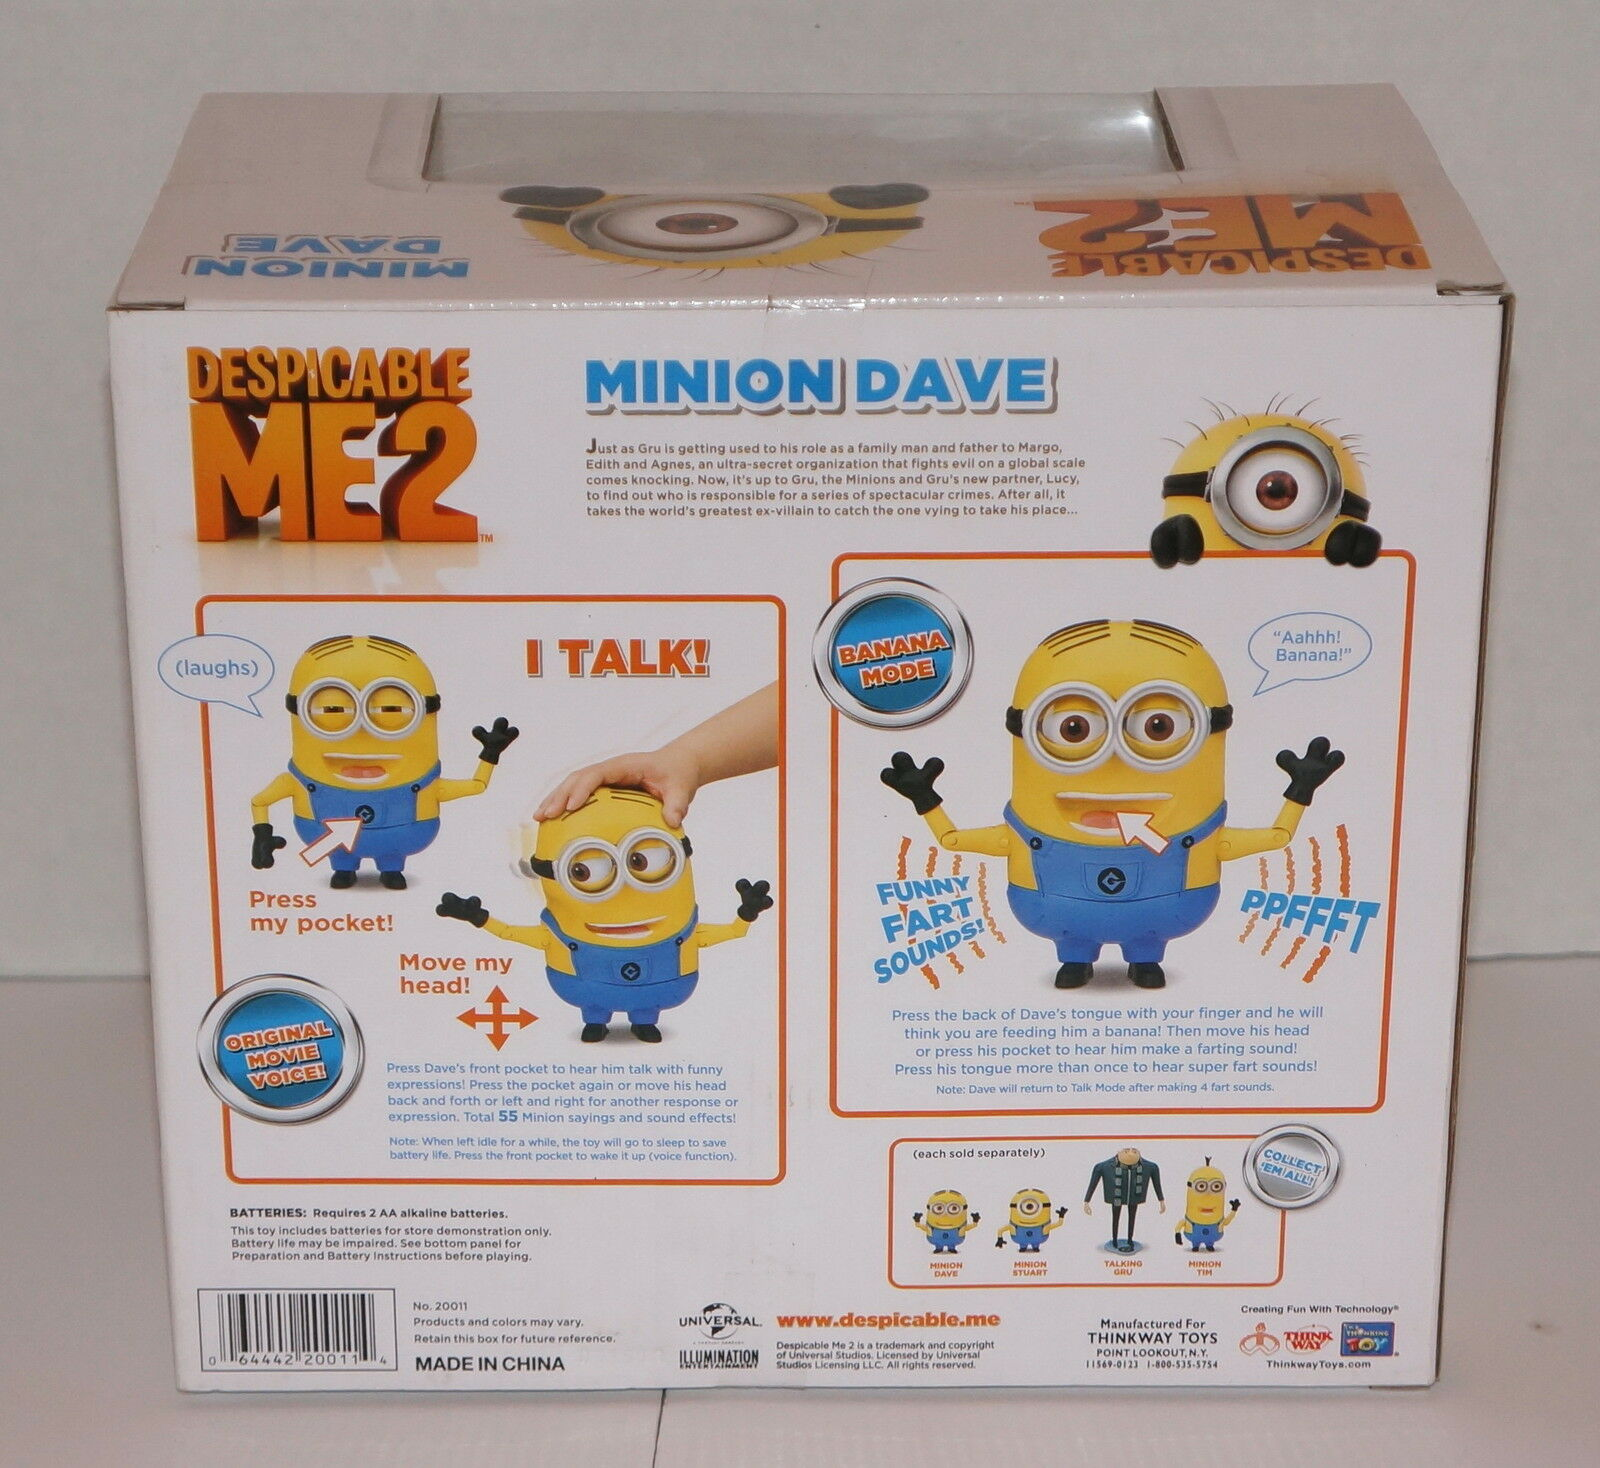 DESPICABLE ME 2 MINION DAVE LAUGHING 8 8 8 ACTION FIGURE 20011 NEW IN BOX 3a8bfd